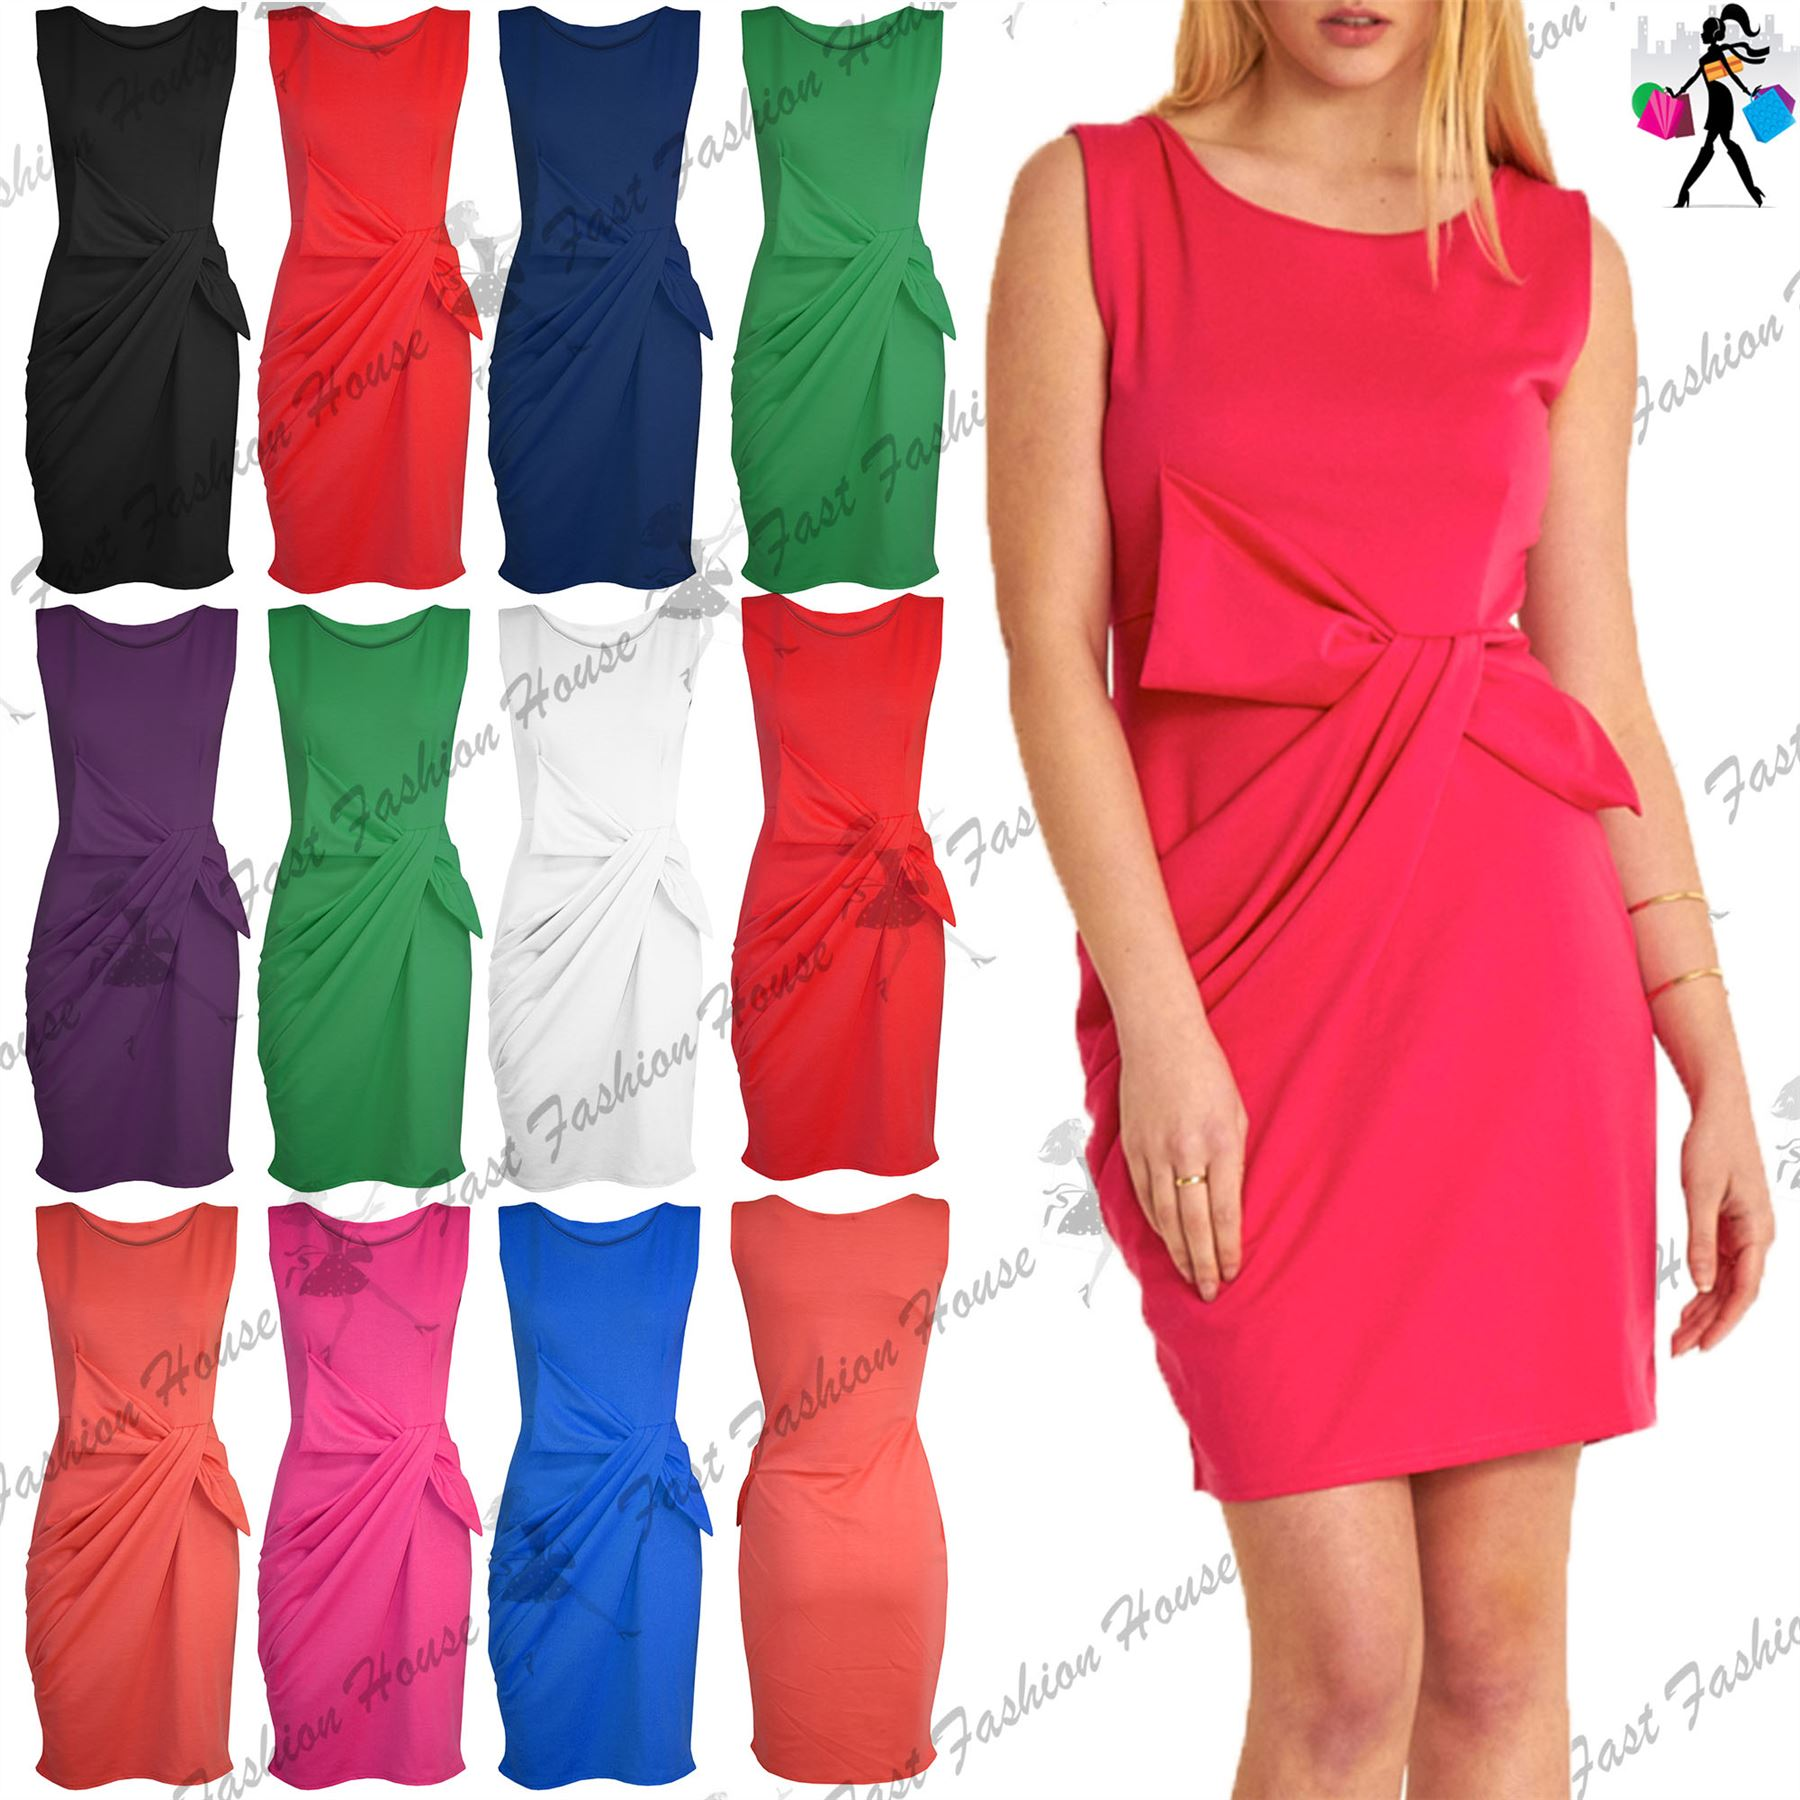 Big W Bow Tie Womens Ladies Side Ruched Big Bow Tie Knot Sleeveless